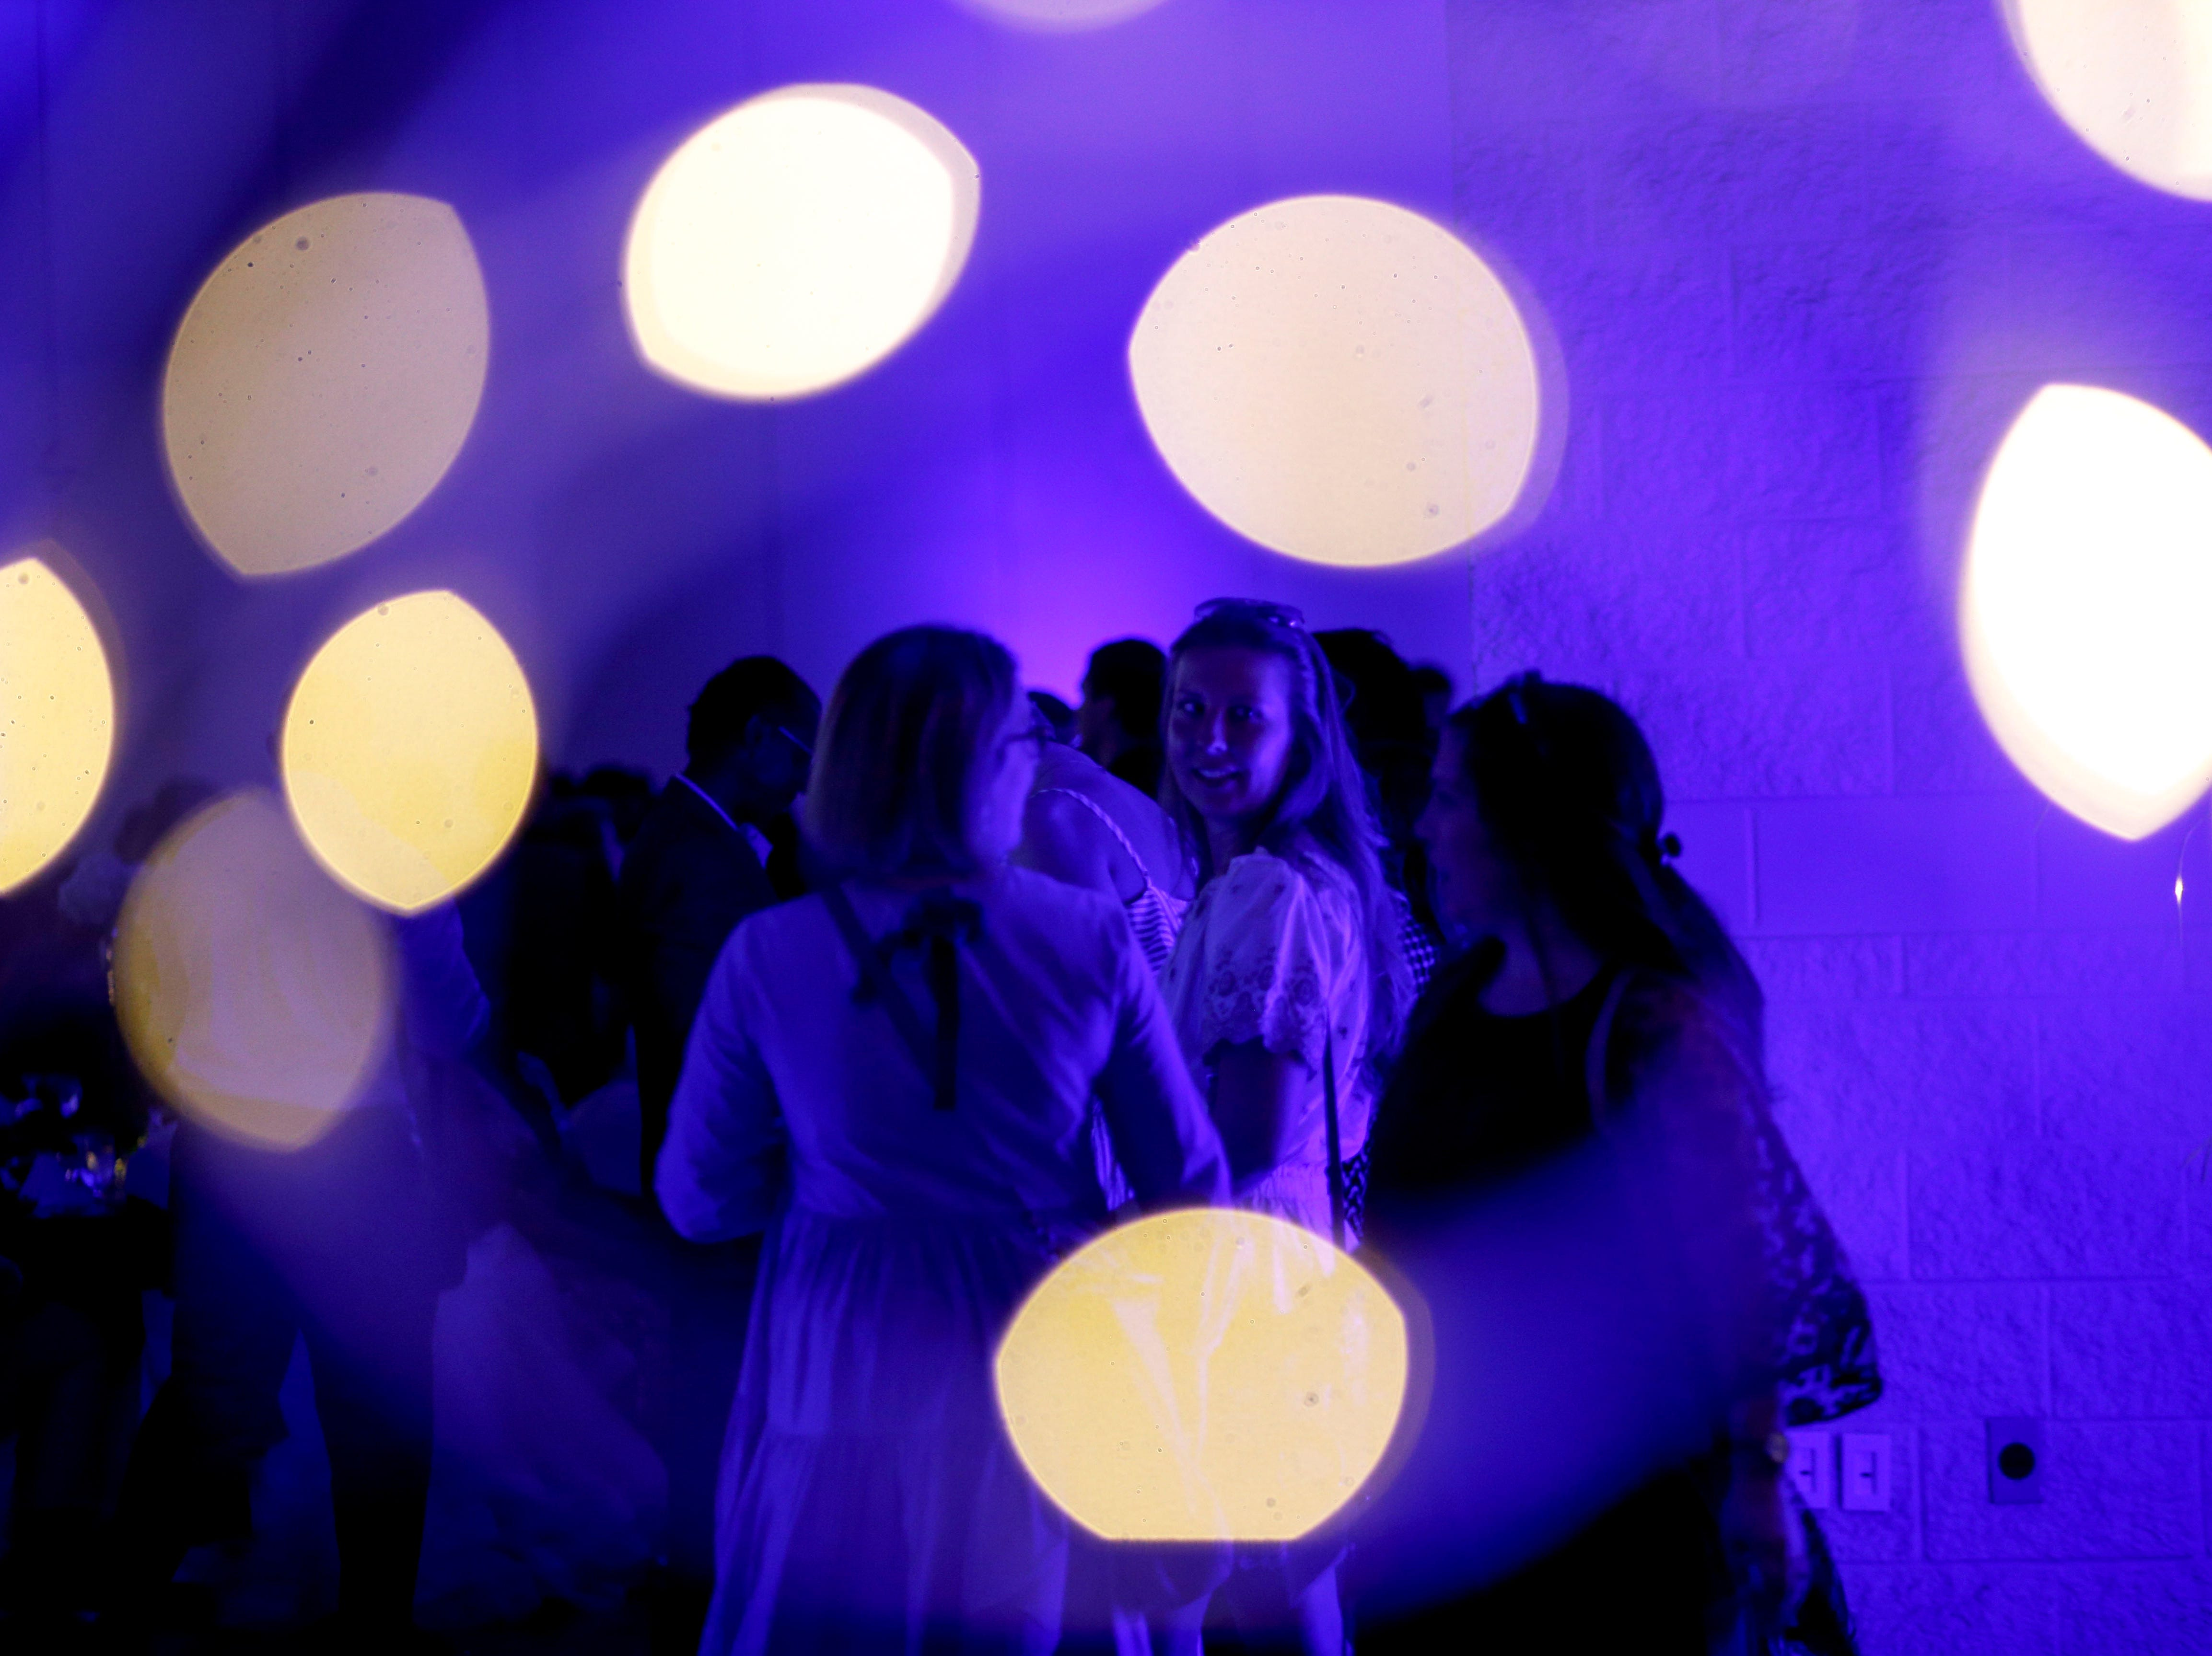 Students gather to the side of the room before the annual father-daughter dance during Clarksville Academy's 2019 prom at The Bruce Convention Center in Hopkinsville, Ky., on Saturday, April 6, 2019.